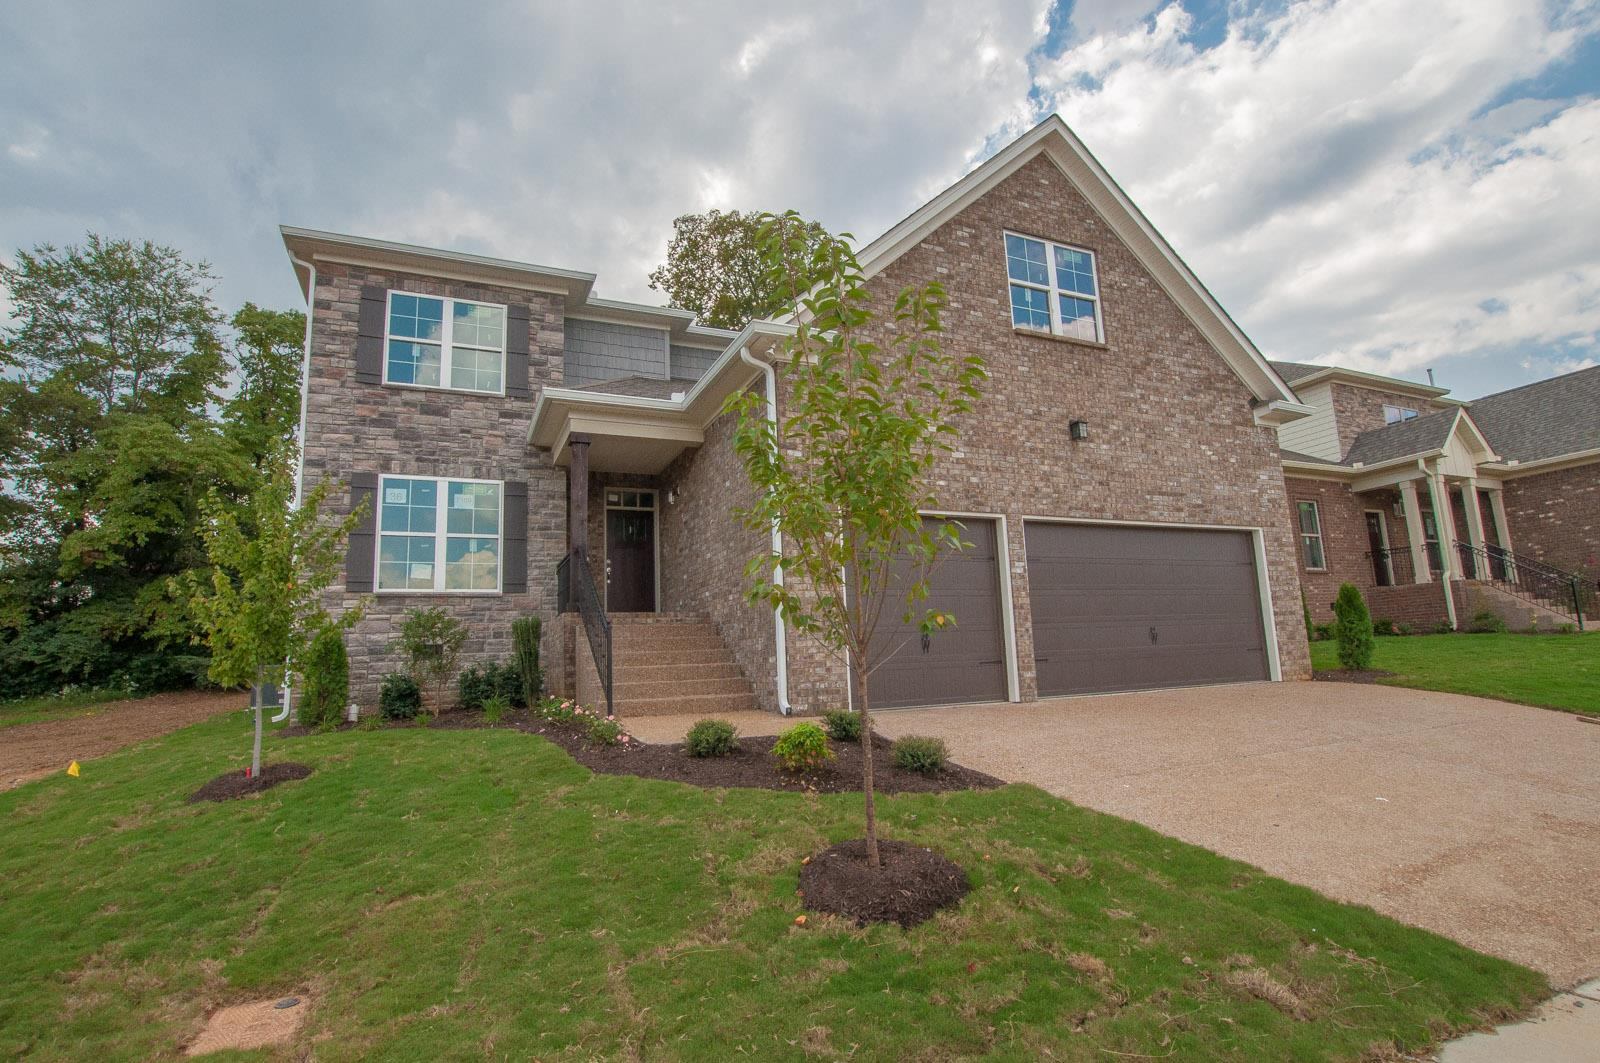 7109 SILVERWOOD TRAIL 37076 - One of Hermitage Homes for Sale